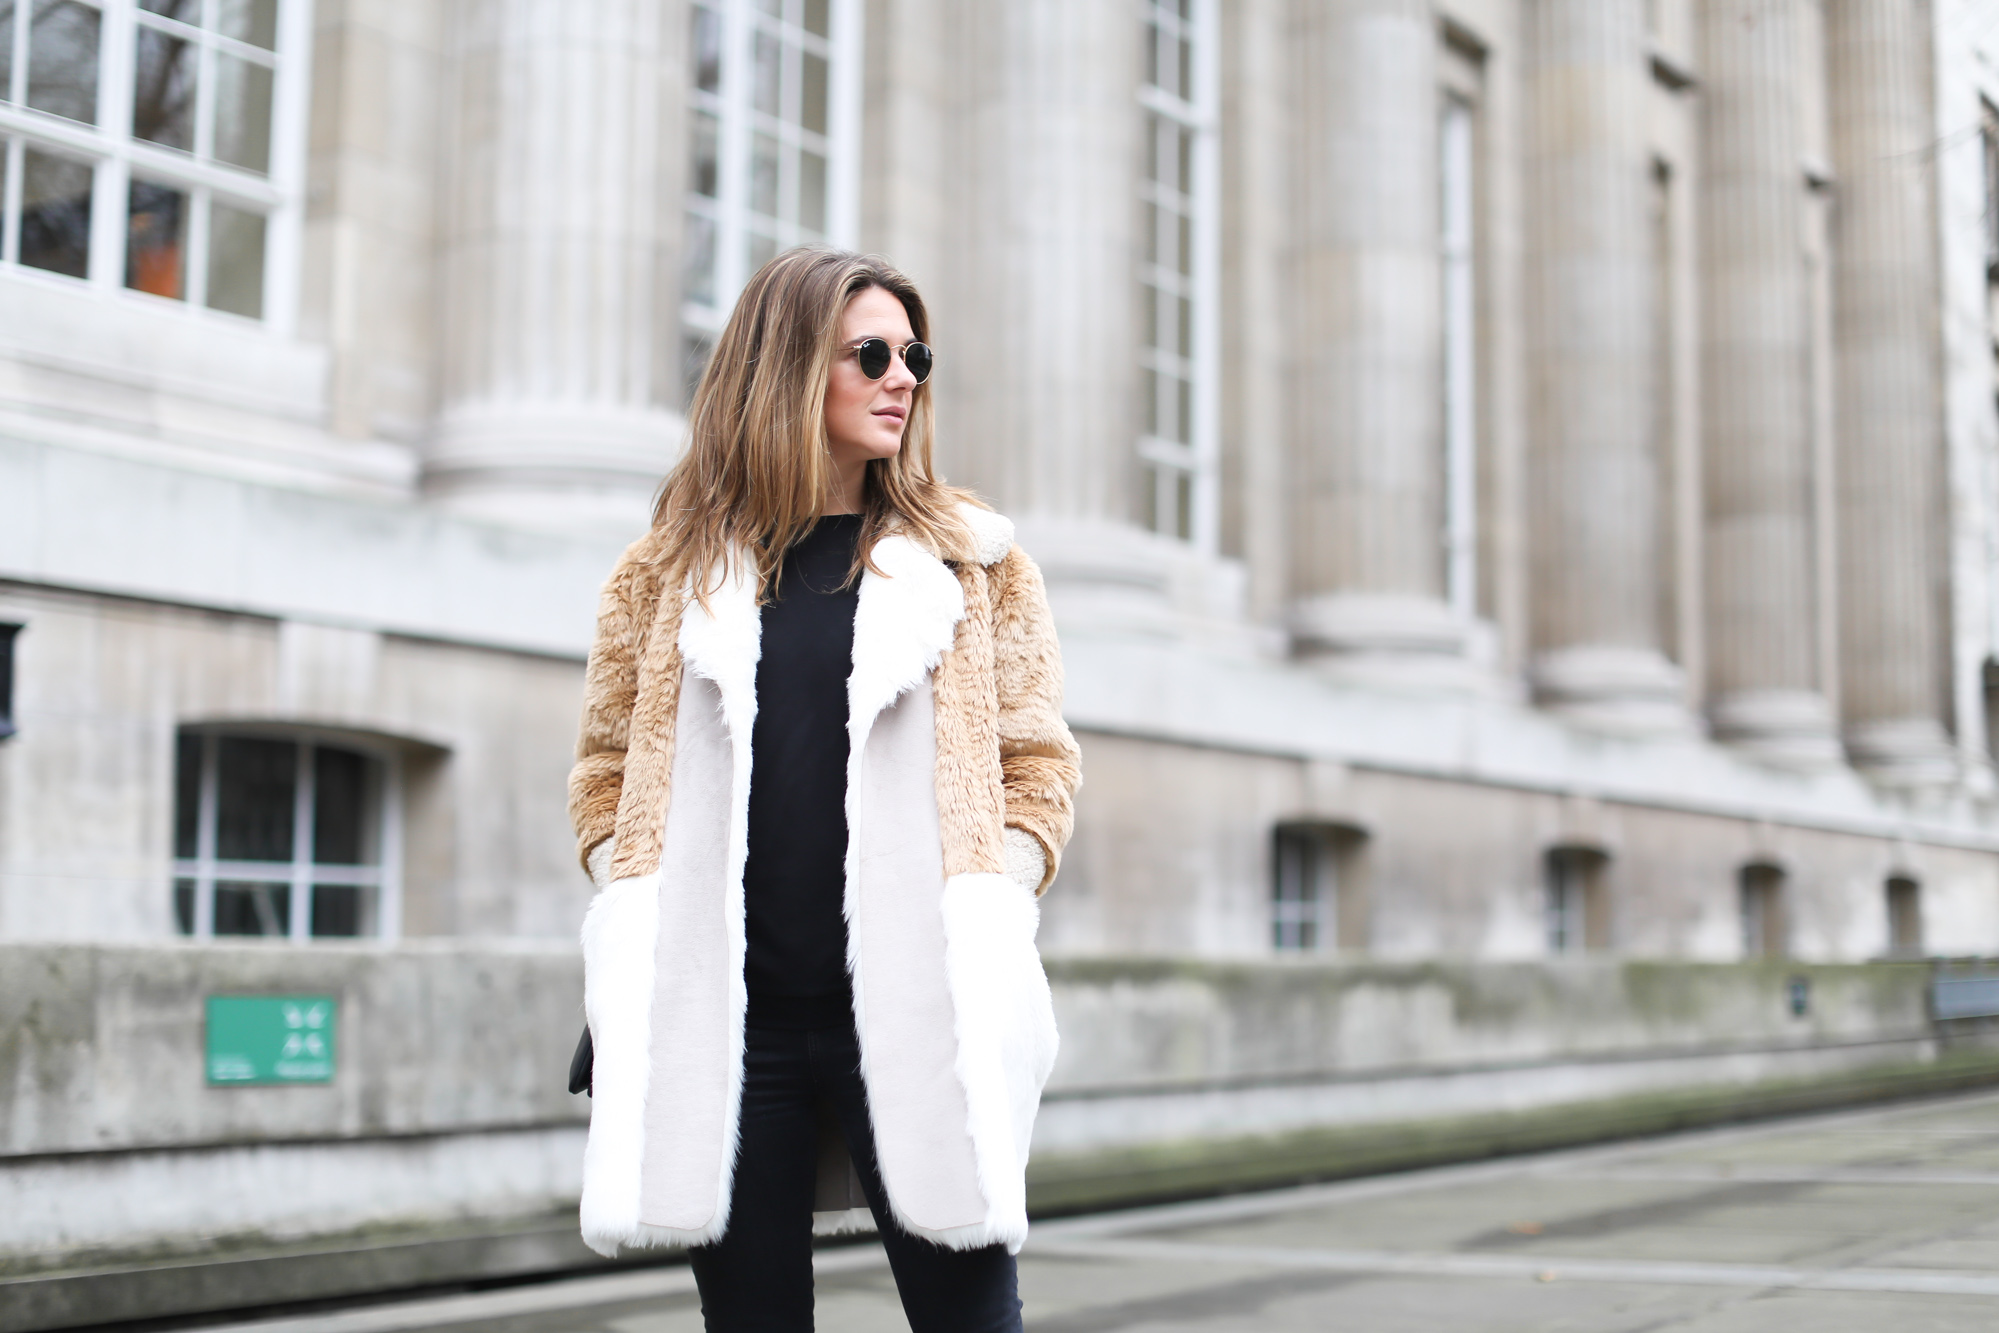 clochet_streestyle_london_asos_faux_fur_patchowork_coat_topshop_jamie_jeans-6